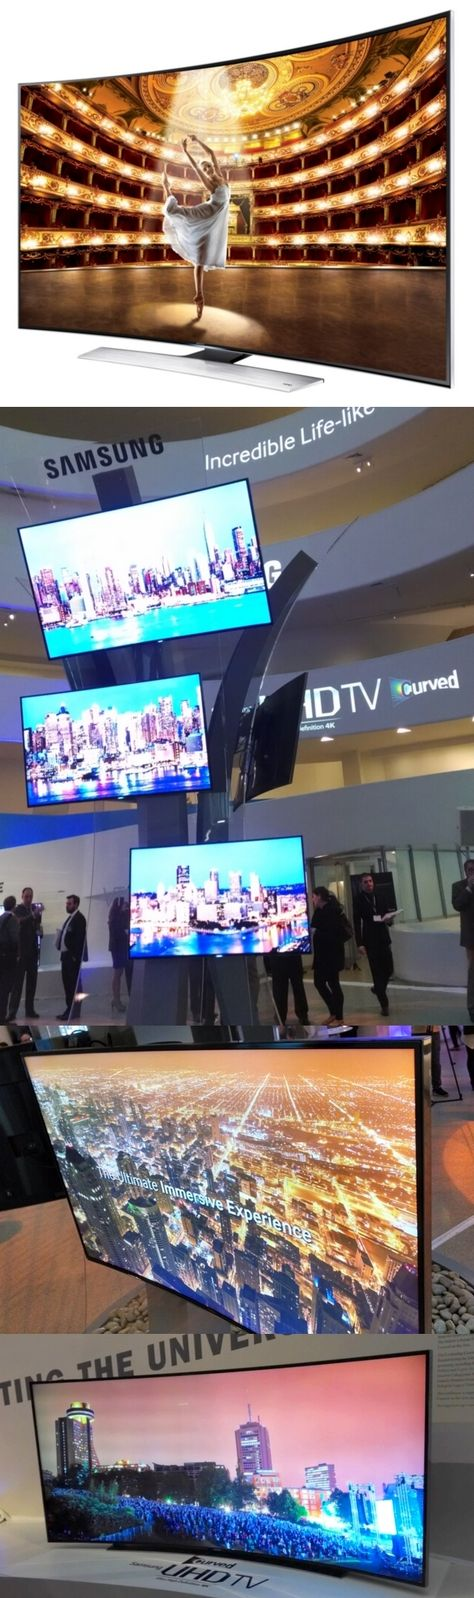 Samsung used the curvy confines of New York's Guggenheim Museum to launch its new curved UHD (ultra-high definition) TVs. The 55-inch ($4,000) and 65-inch ($5,000) Samsung HU9000 series curved UHDTVs go on sale this month while an $8,000 78-inch model will debut in May. A yet-unpriced 105-inch curved UHD TV is planned for later this year. All of the curved UHD TVs can upscale old videos into the sharper UHD format and all have smartphone-like quad-core processors for the many apps they can run.